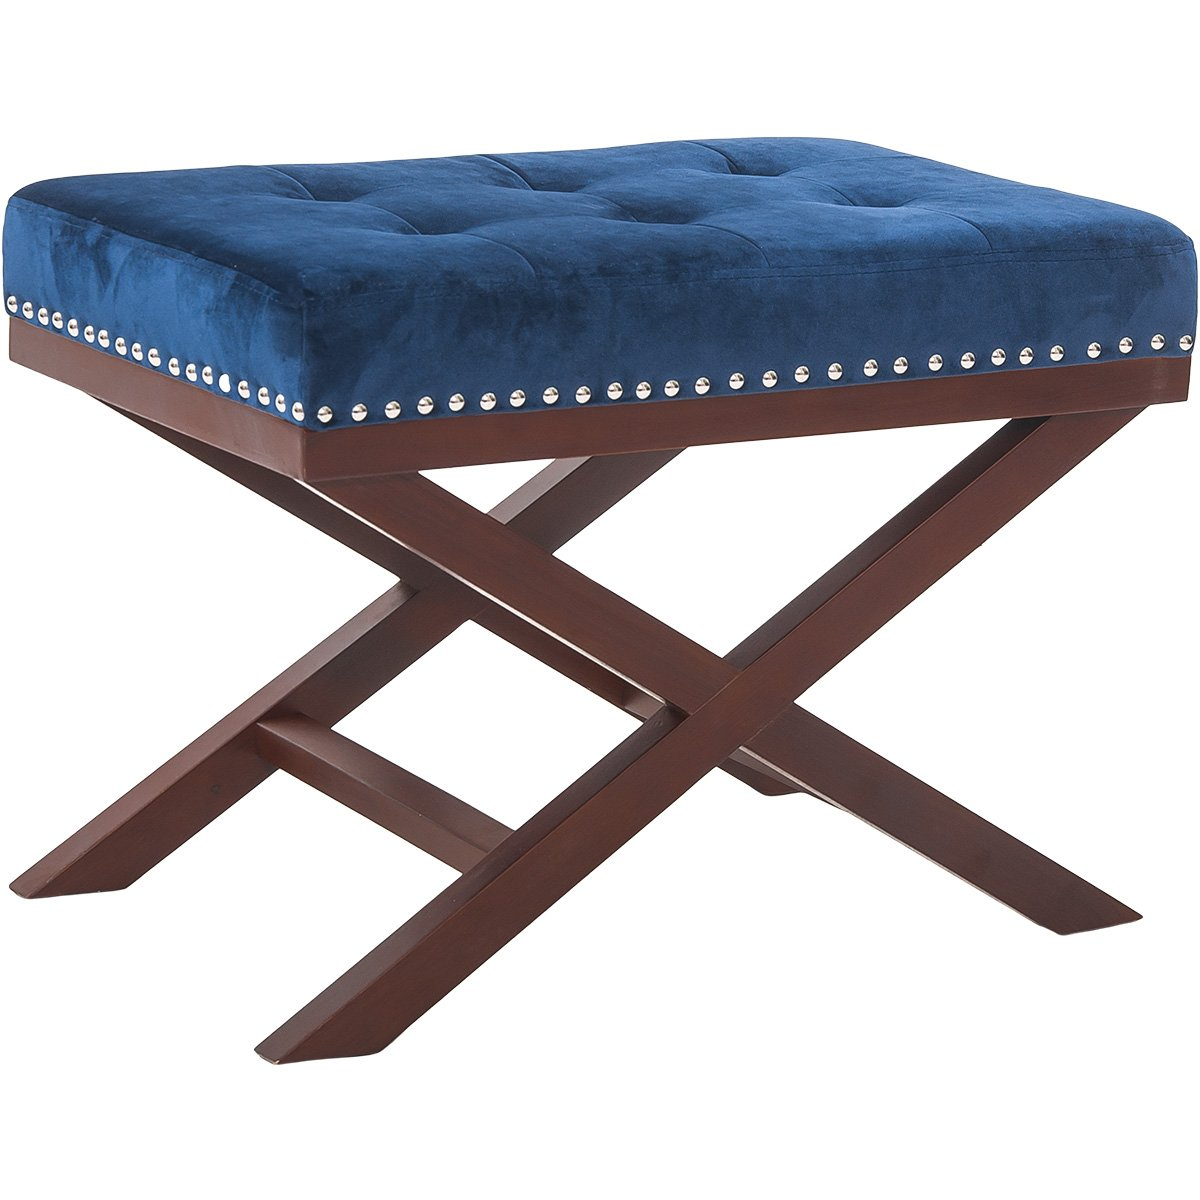 Harper&Bright Designs Upholstered Tufted X Bench Ottoman with Nailhead Detail and Solid Wood Legs (Indigo) by Harper&Bright Designs (Image #1)